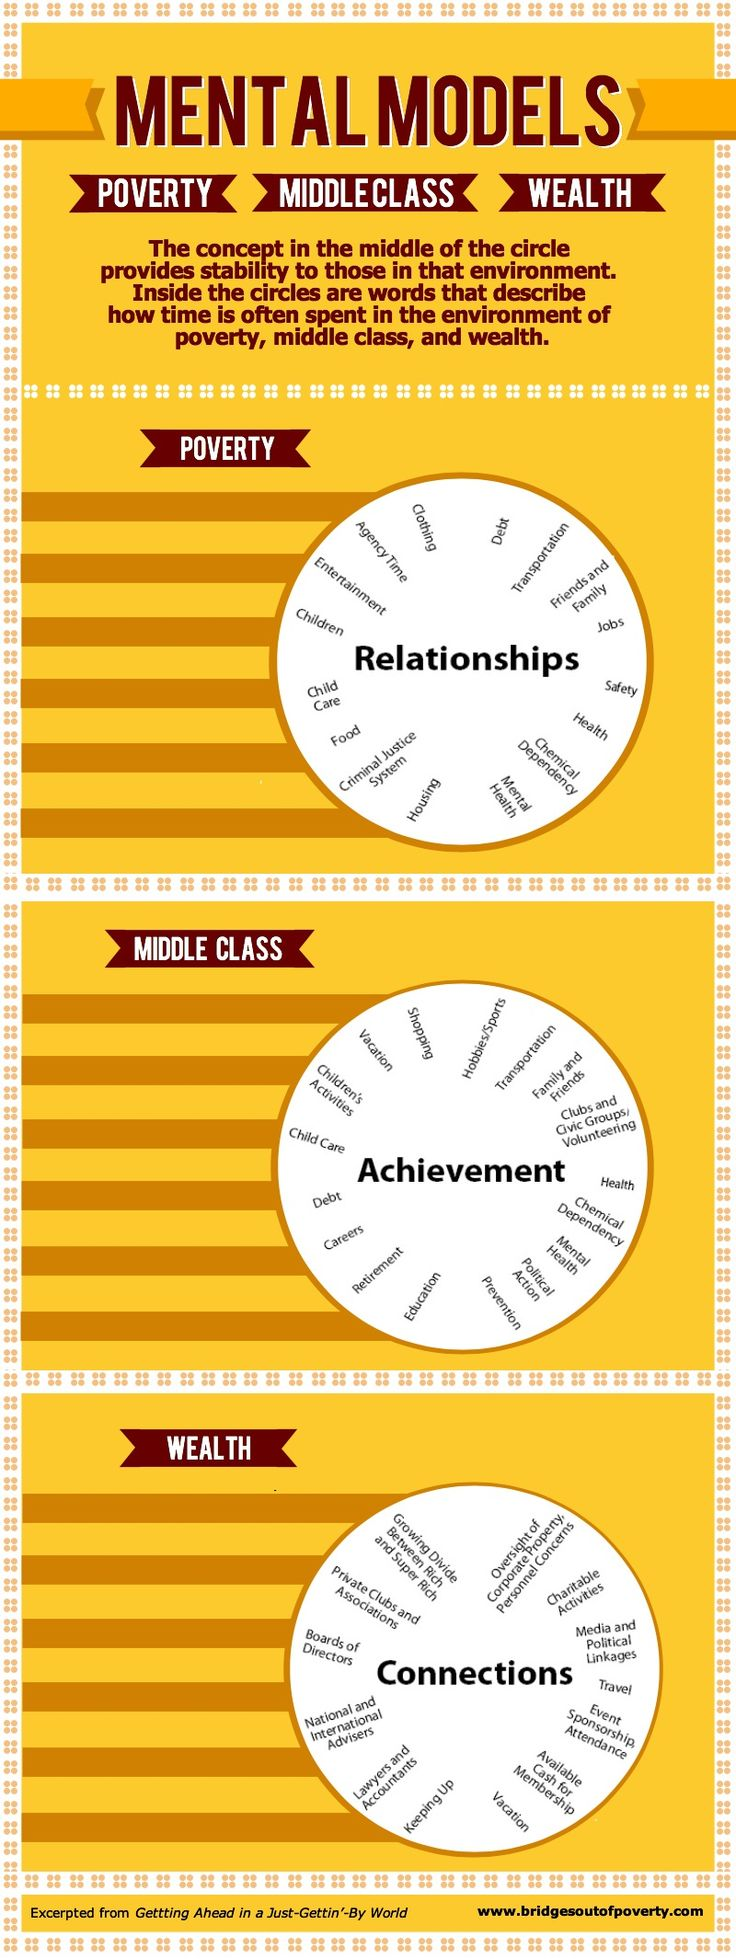 Here's a mental model of socio-economic class. How does one in the environment of poverty, middle class, or wealth spend his or her time and what stabilizes the environment? www.bridgesoutofpoverty.com #gettingahead #bridgesoutofpoverty #mentalmodelofpoverty #mentalmodelofwealth #mentalmodelofmiddleclass